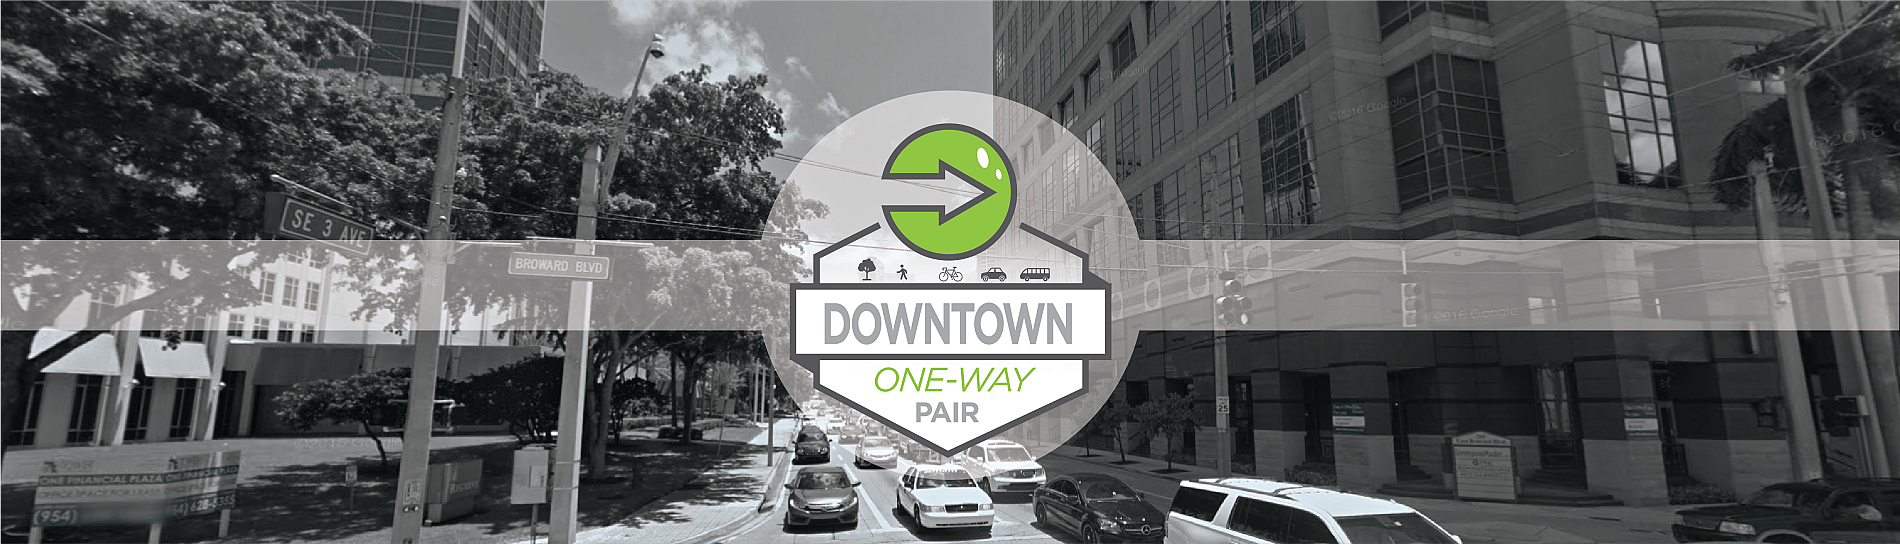 Downtown Oneway Pair Banner